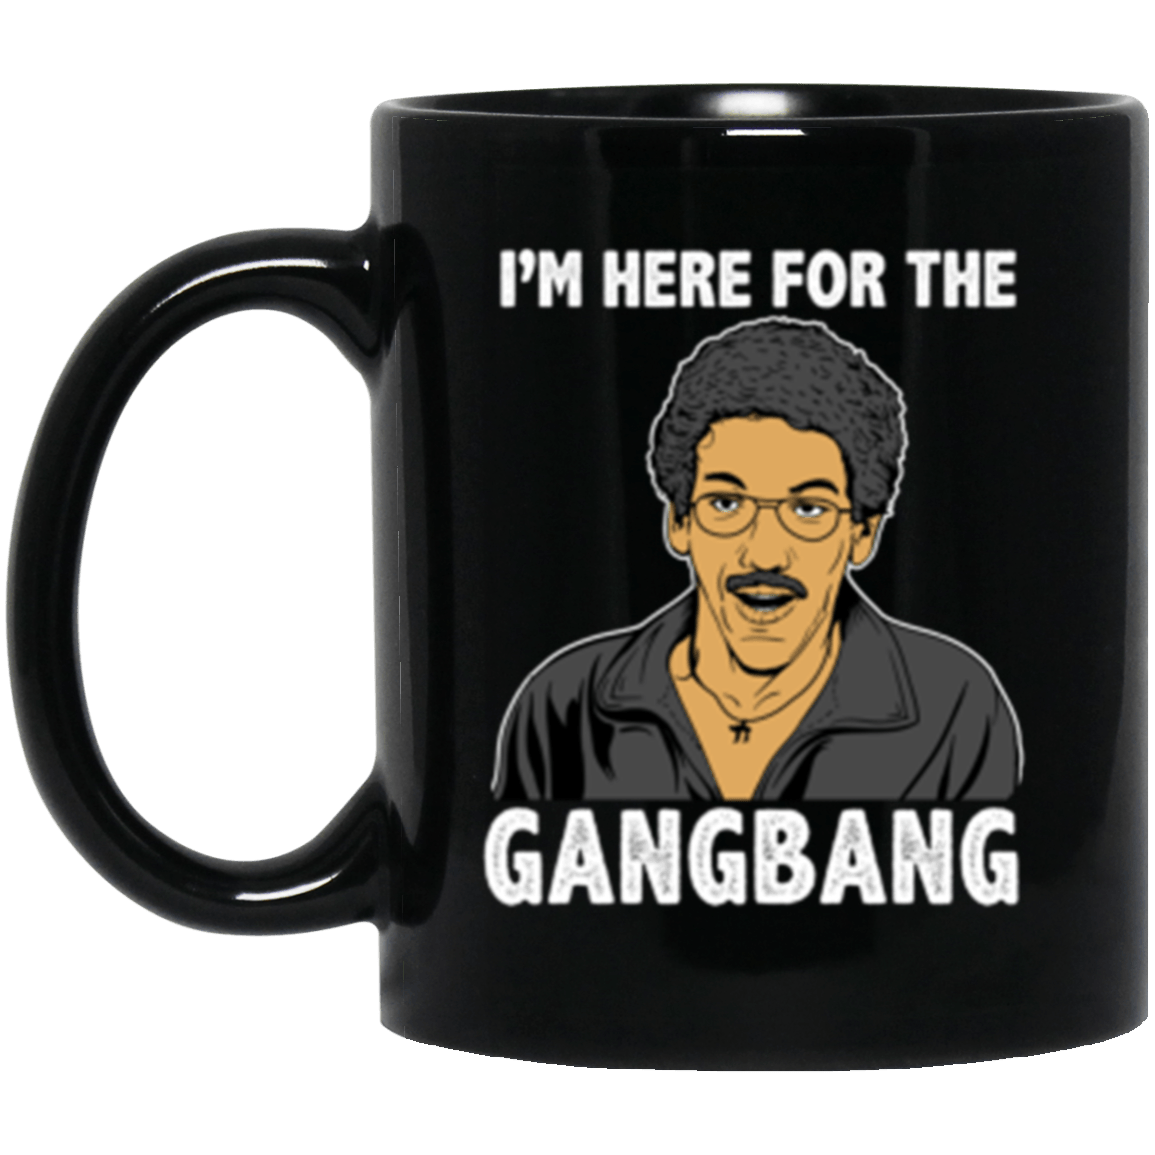 Gangbang Black Mug 11oz (2-sided)